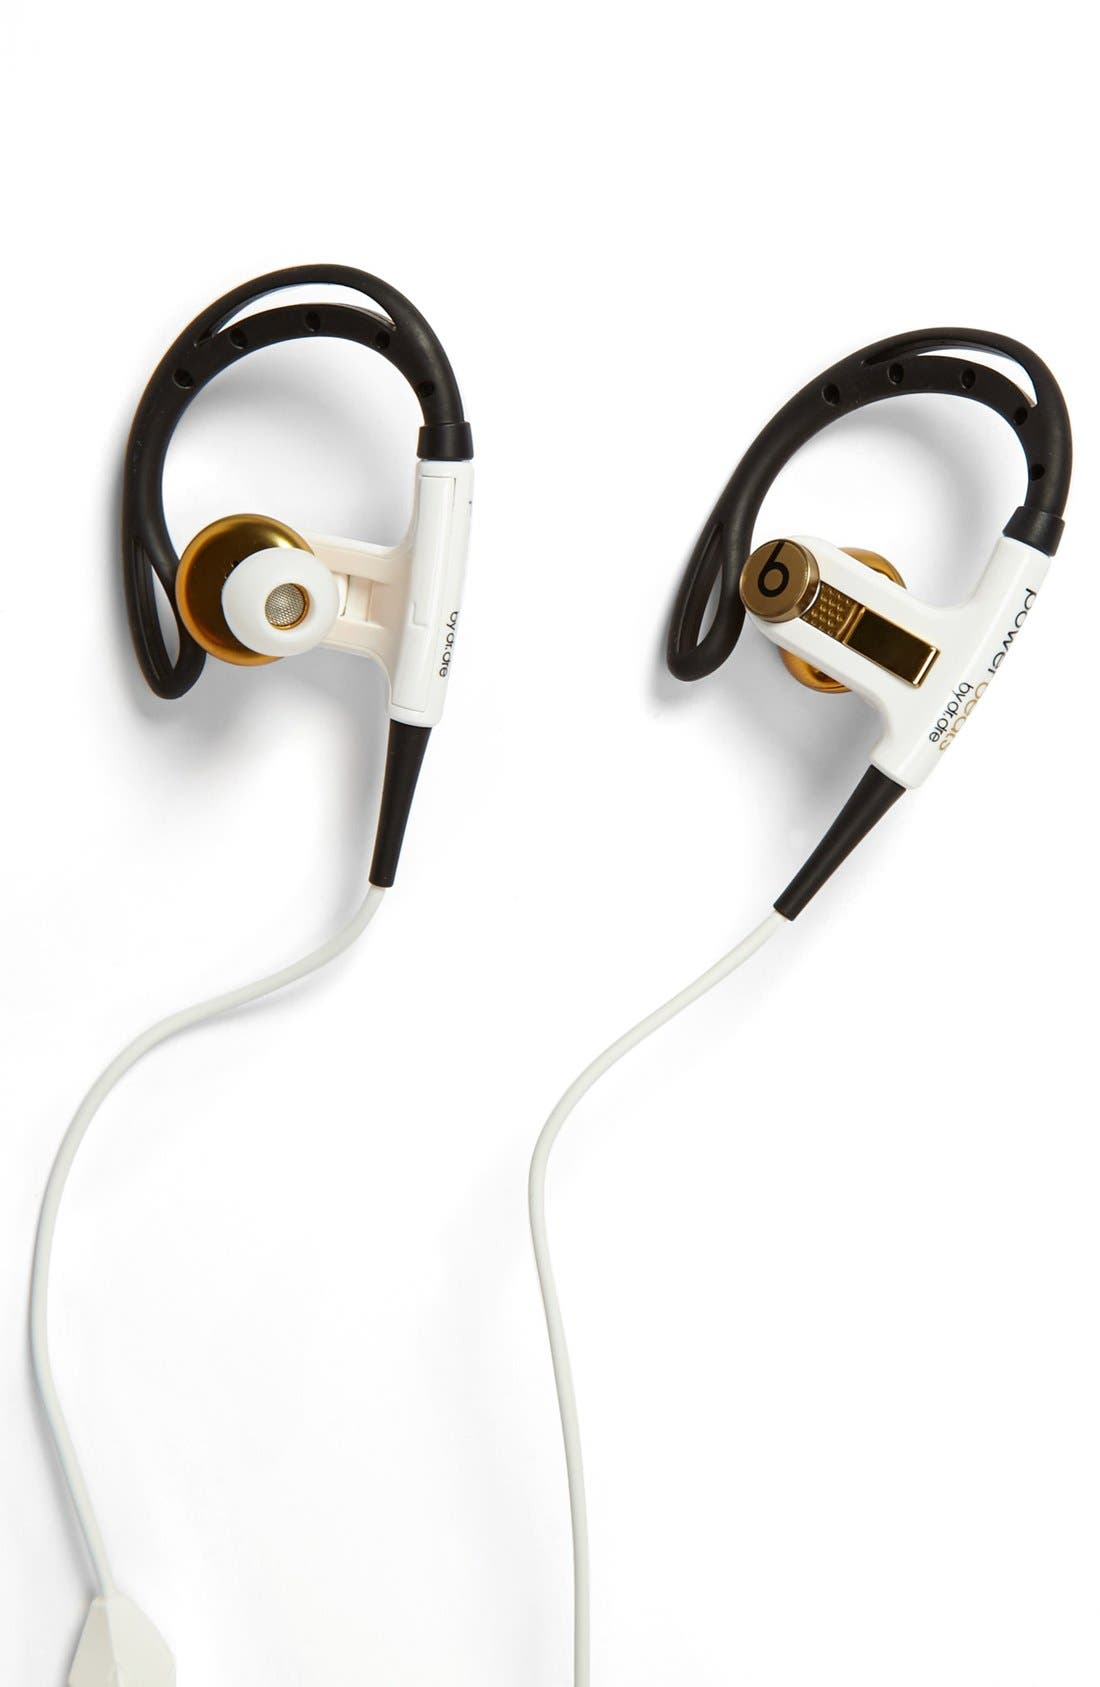 Alternate Image 1 Selected - Beats by Dr. Dre 'LeBron James Powerbeats' In-Ear Headphones (Limited Edition)